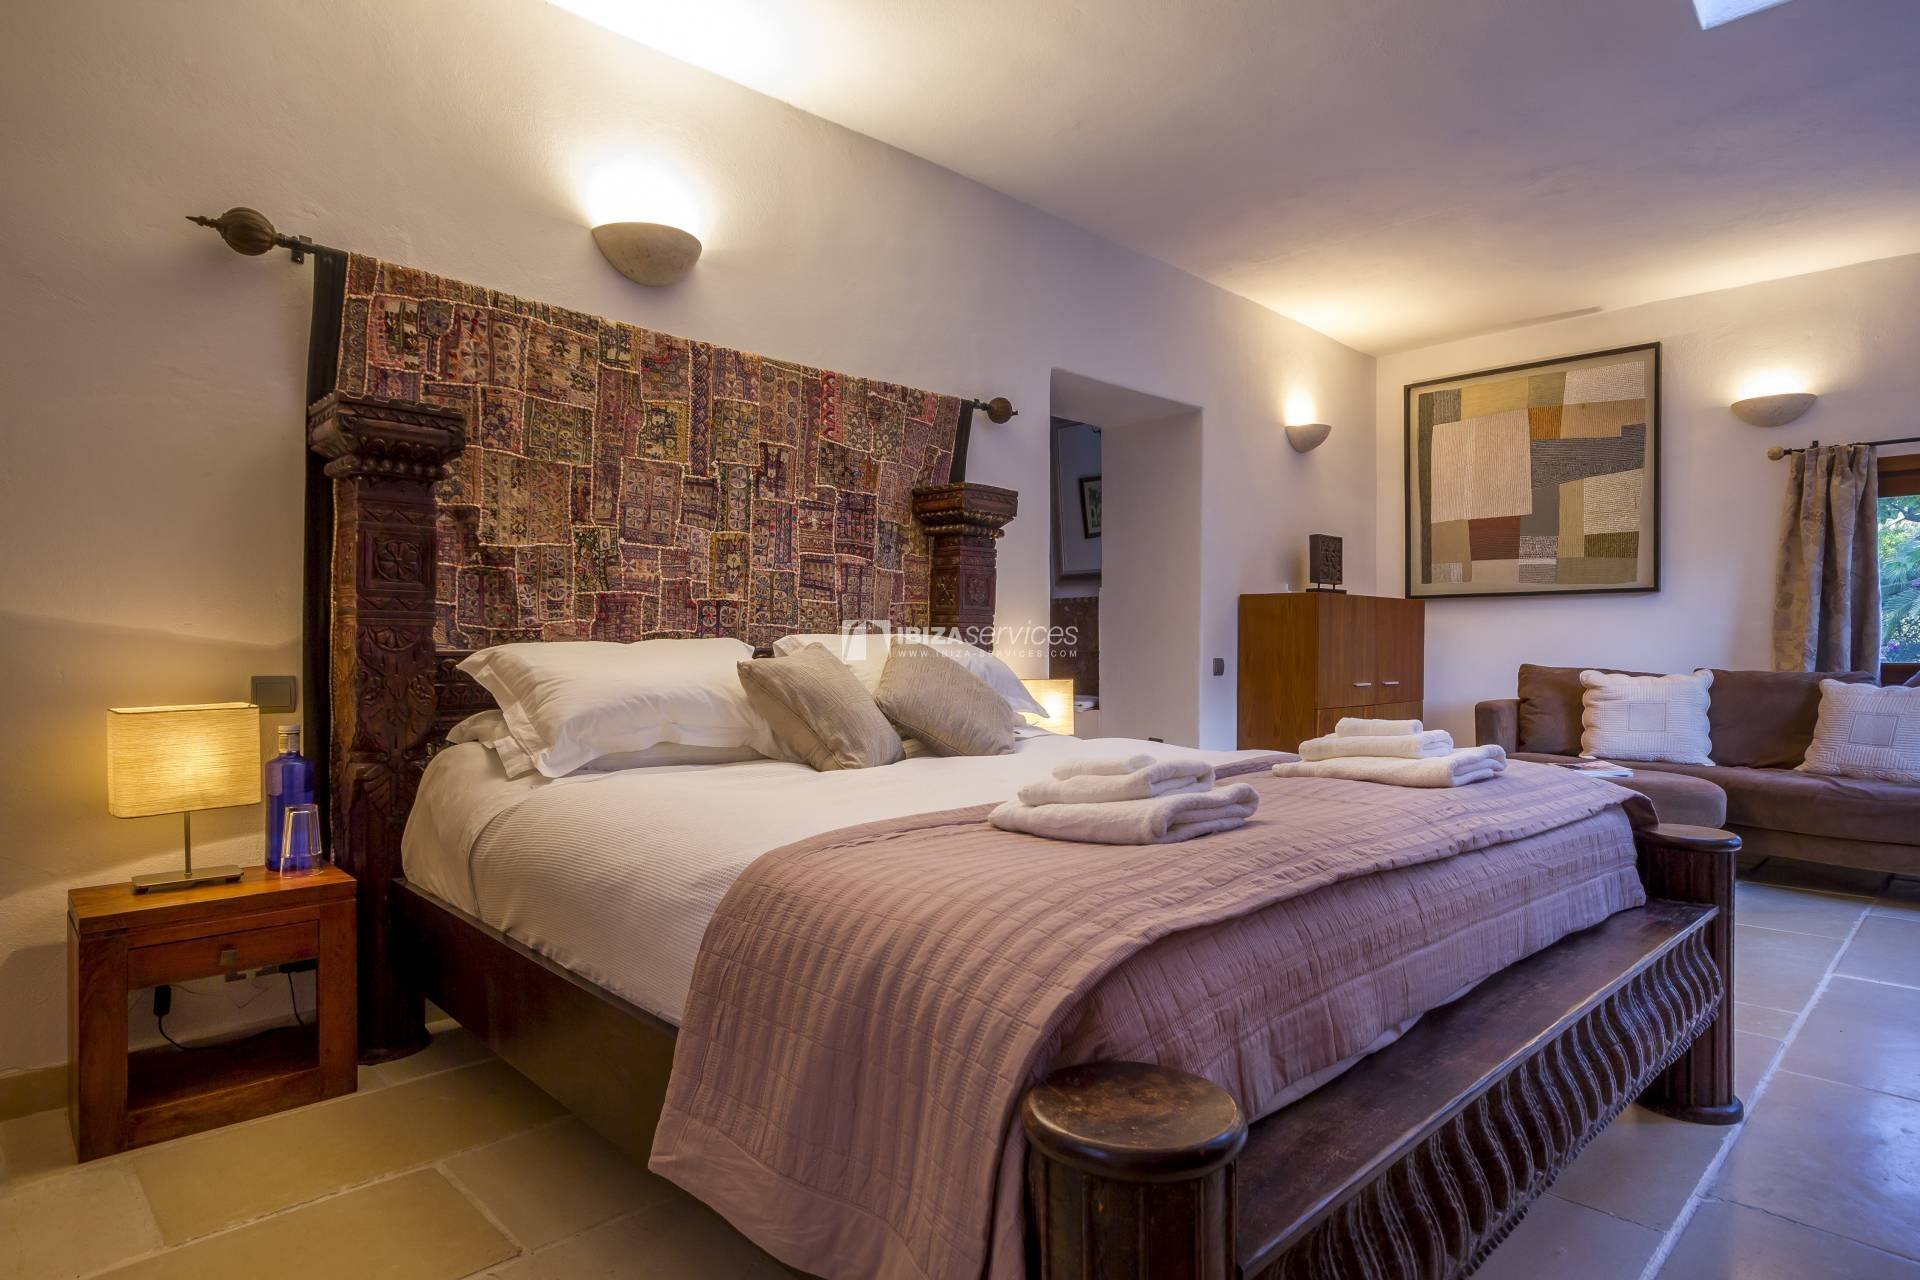 Beautifully finca located between St gertudis and San lorenzo perspectiva 10